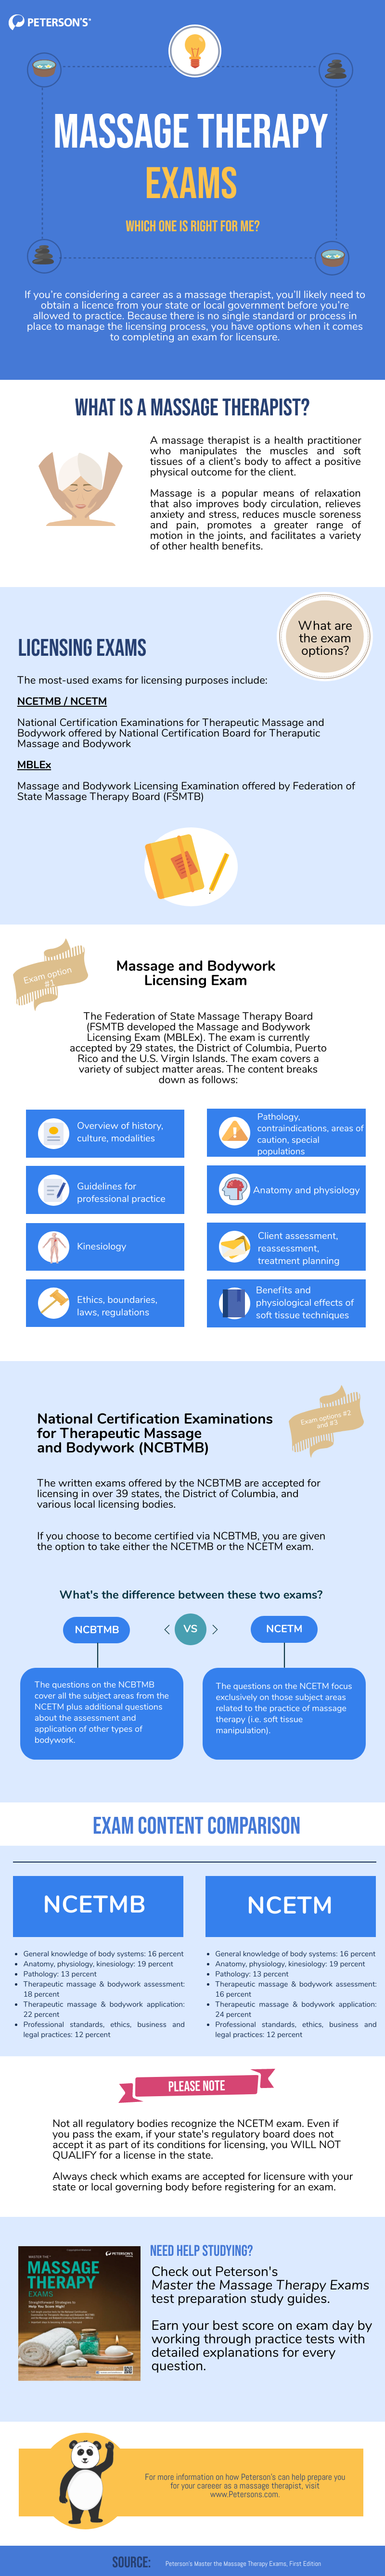 infographic explaining massage therapy exam differences